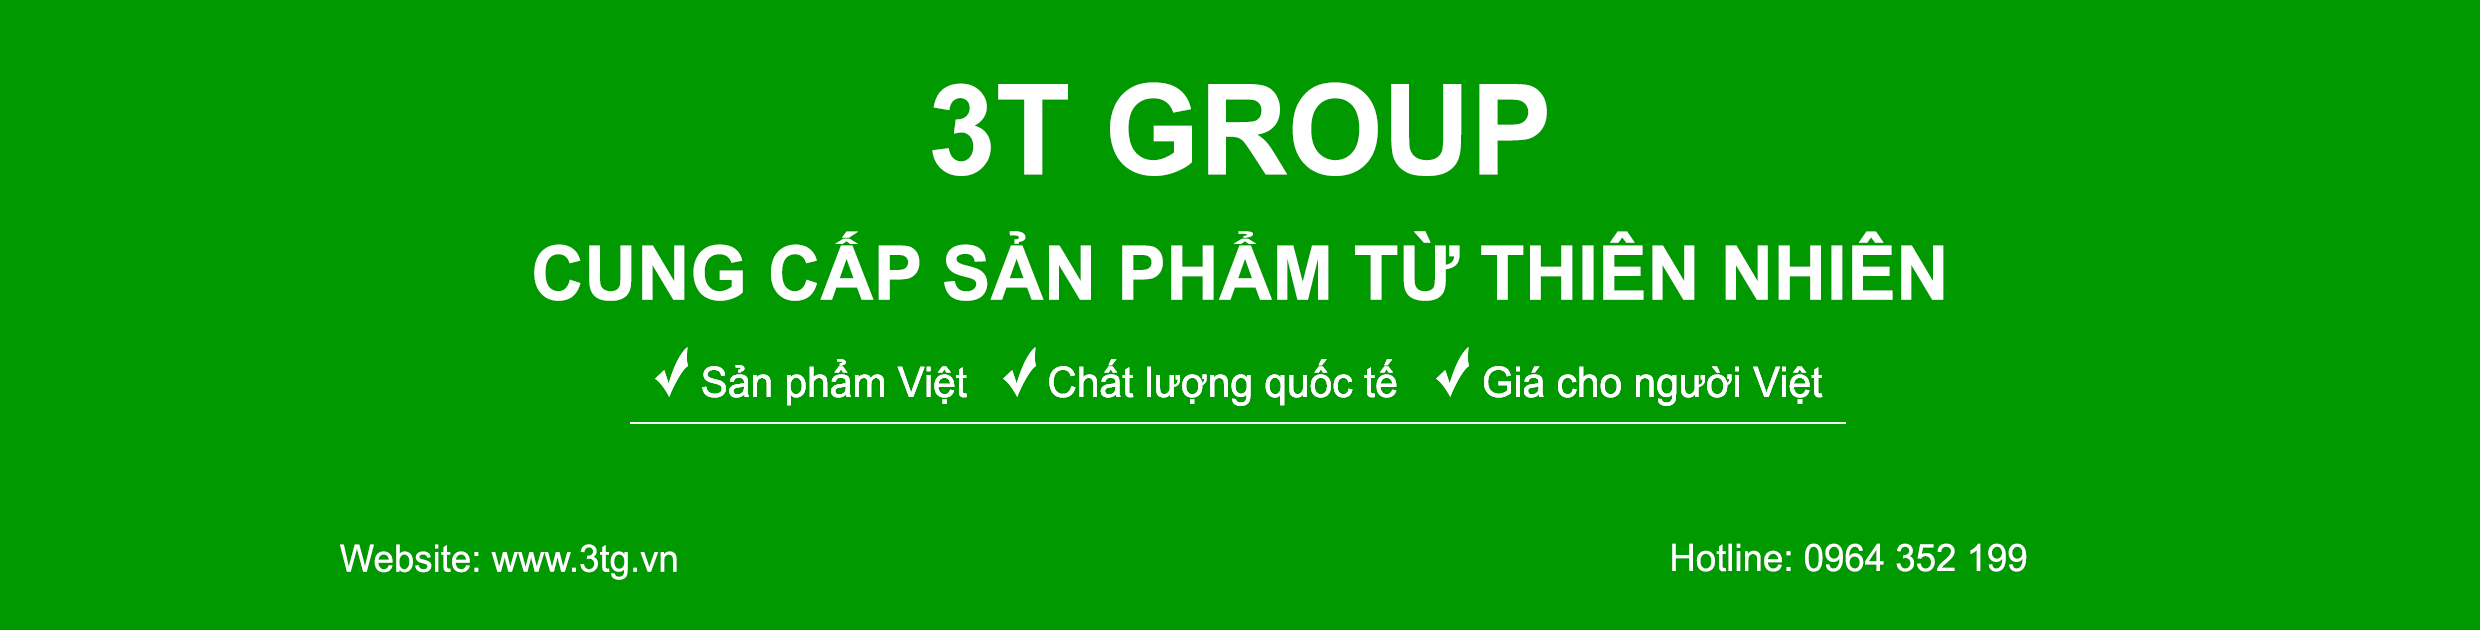 3T Group